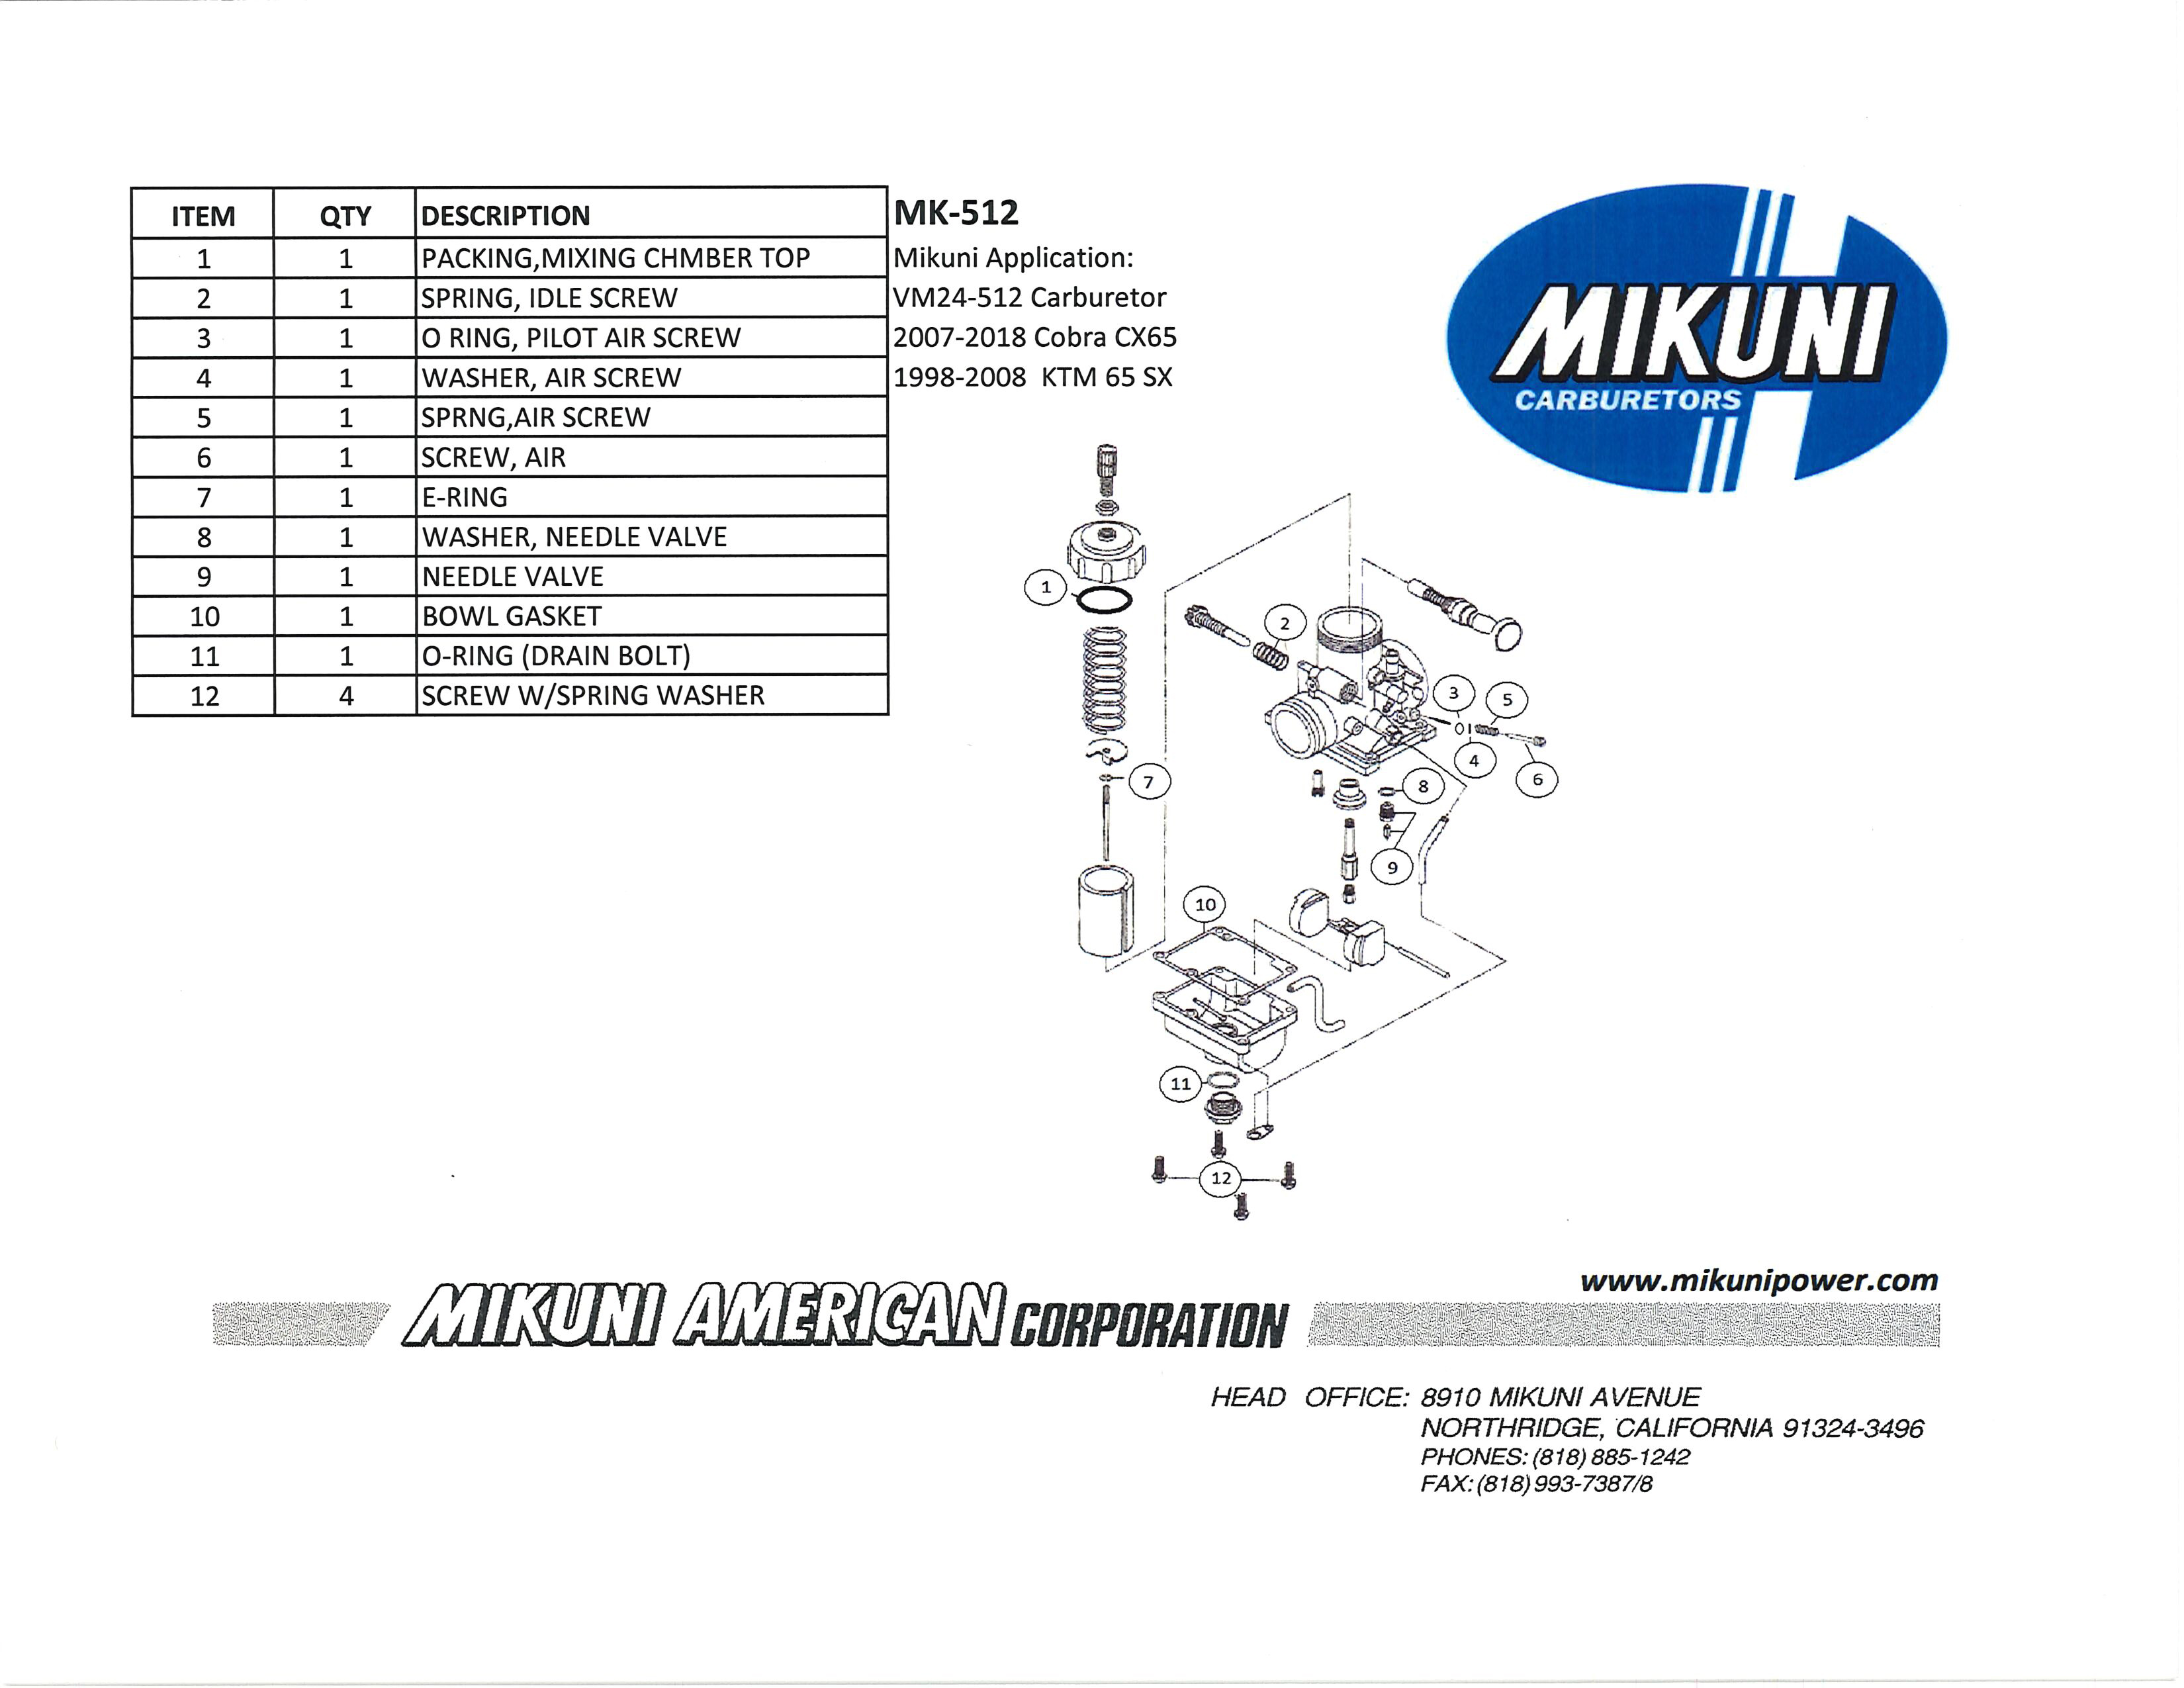 Mikuni Power - Mikuni Genuine Carburetor & Fuel Pump Rebuild